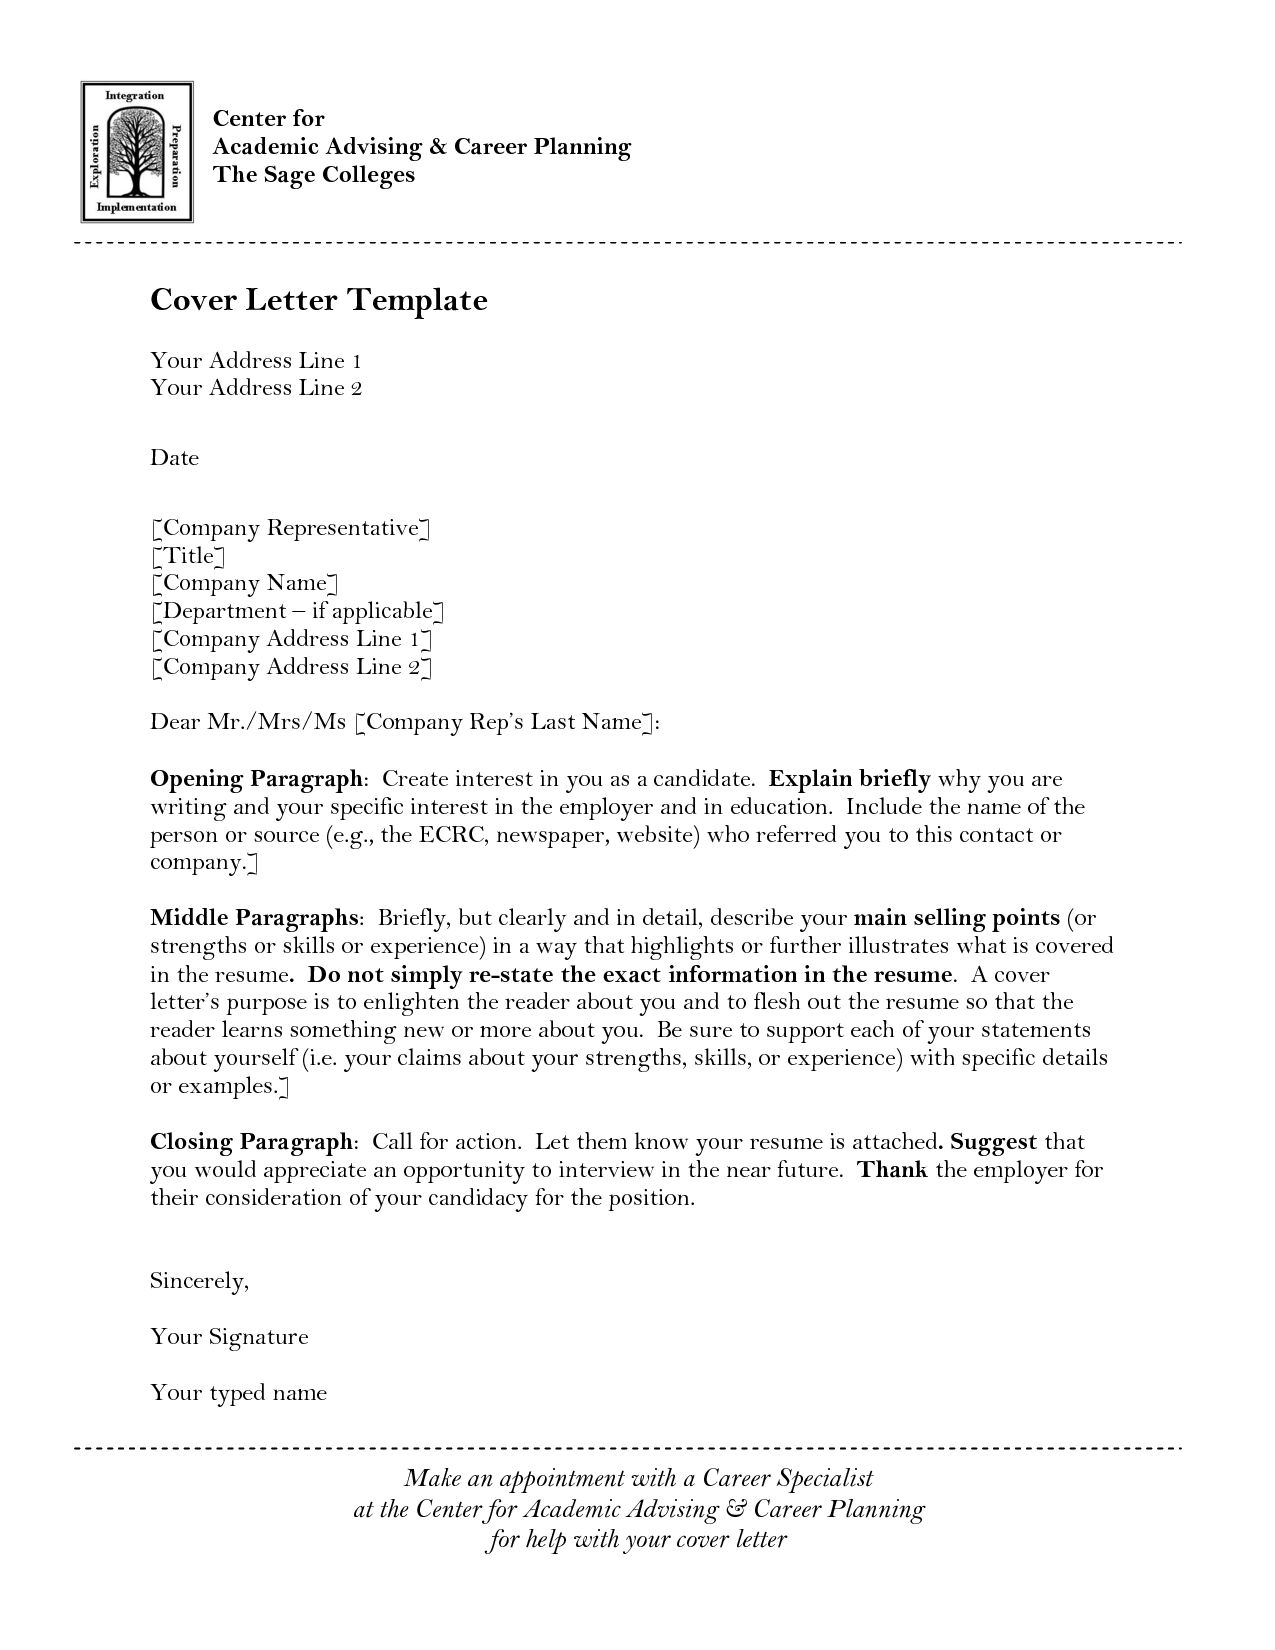 Mechanical Engineer Cover Letter Cover Letter Example Resume